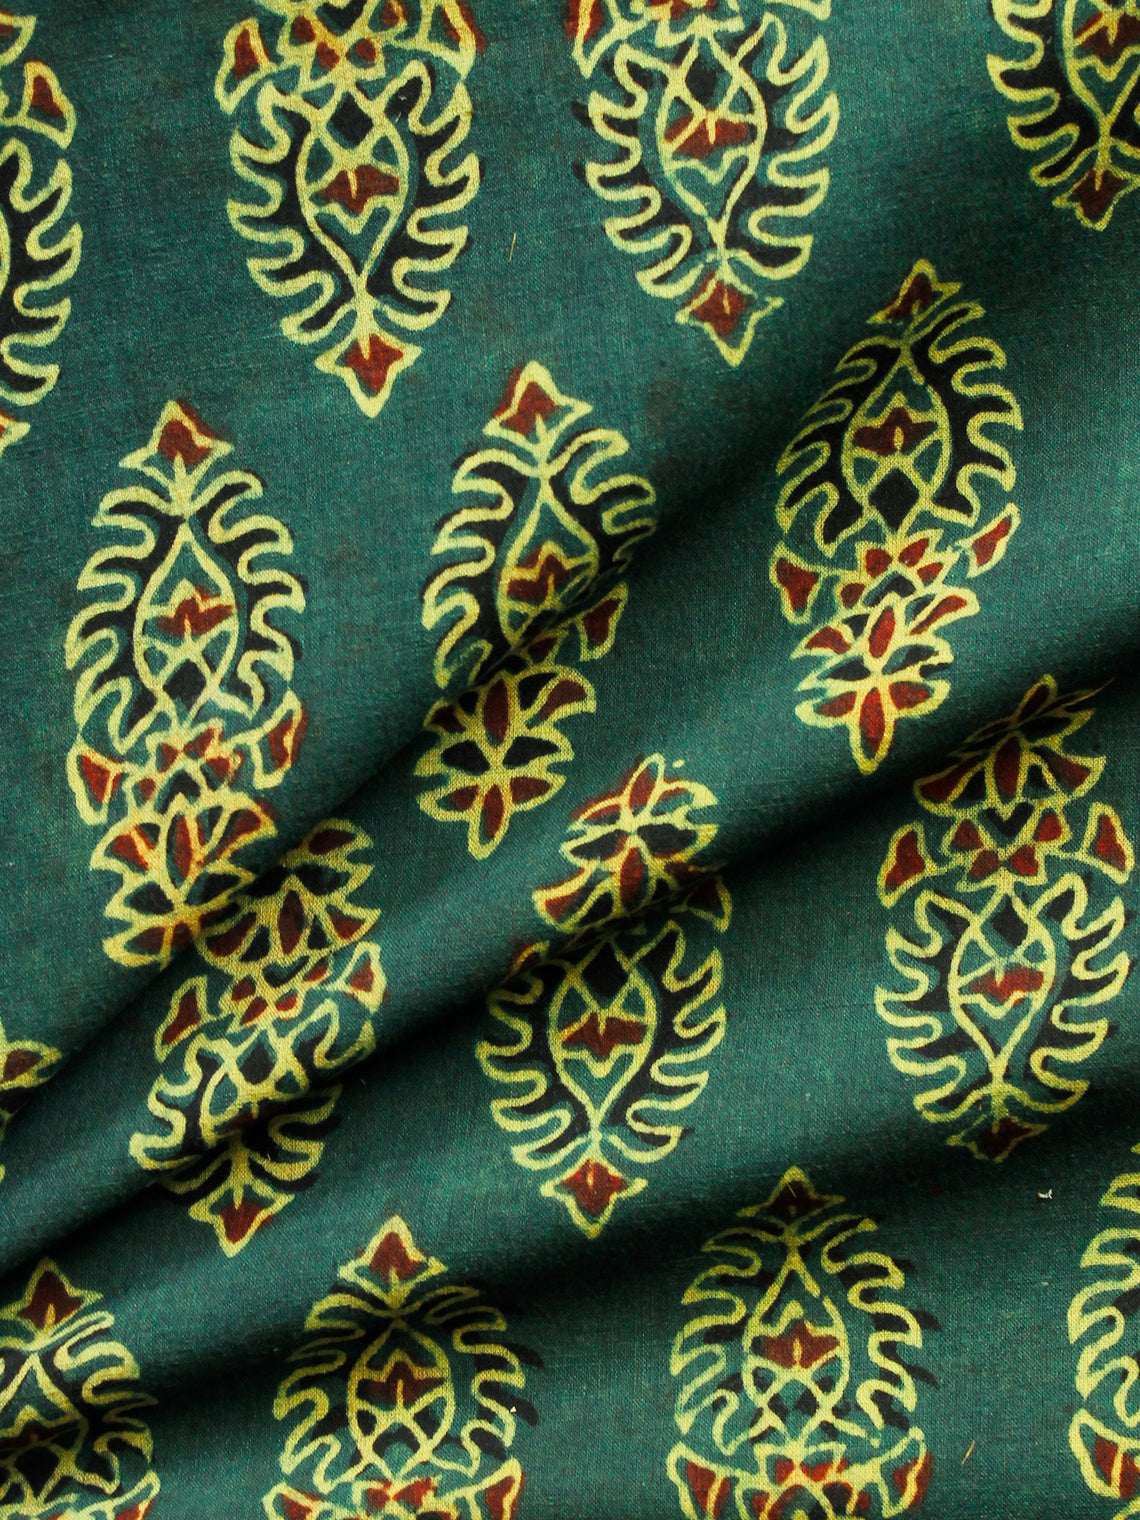 Green Yellow Red Black Ajrakh Hand Block Printed Cotton Fabric Per Meter - F003F1608